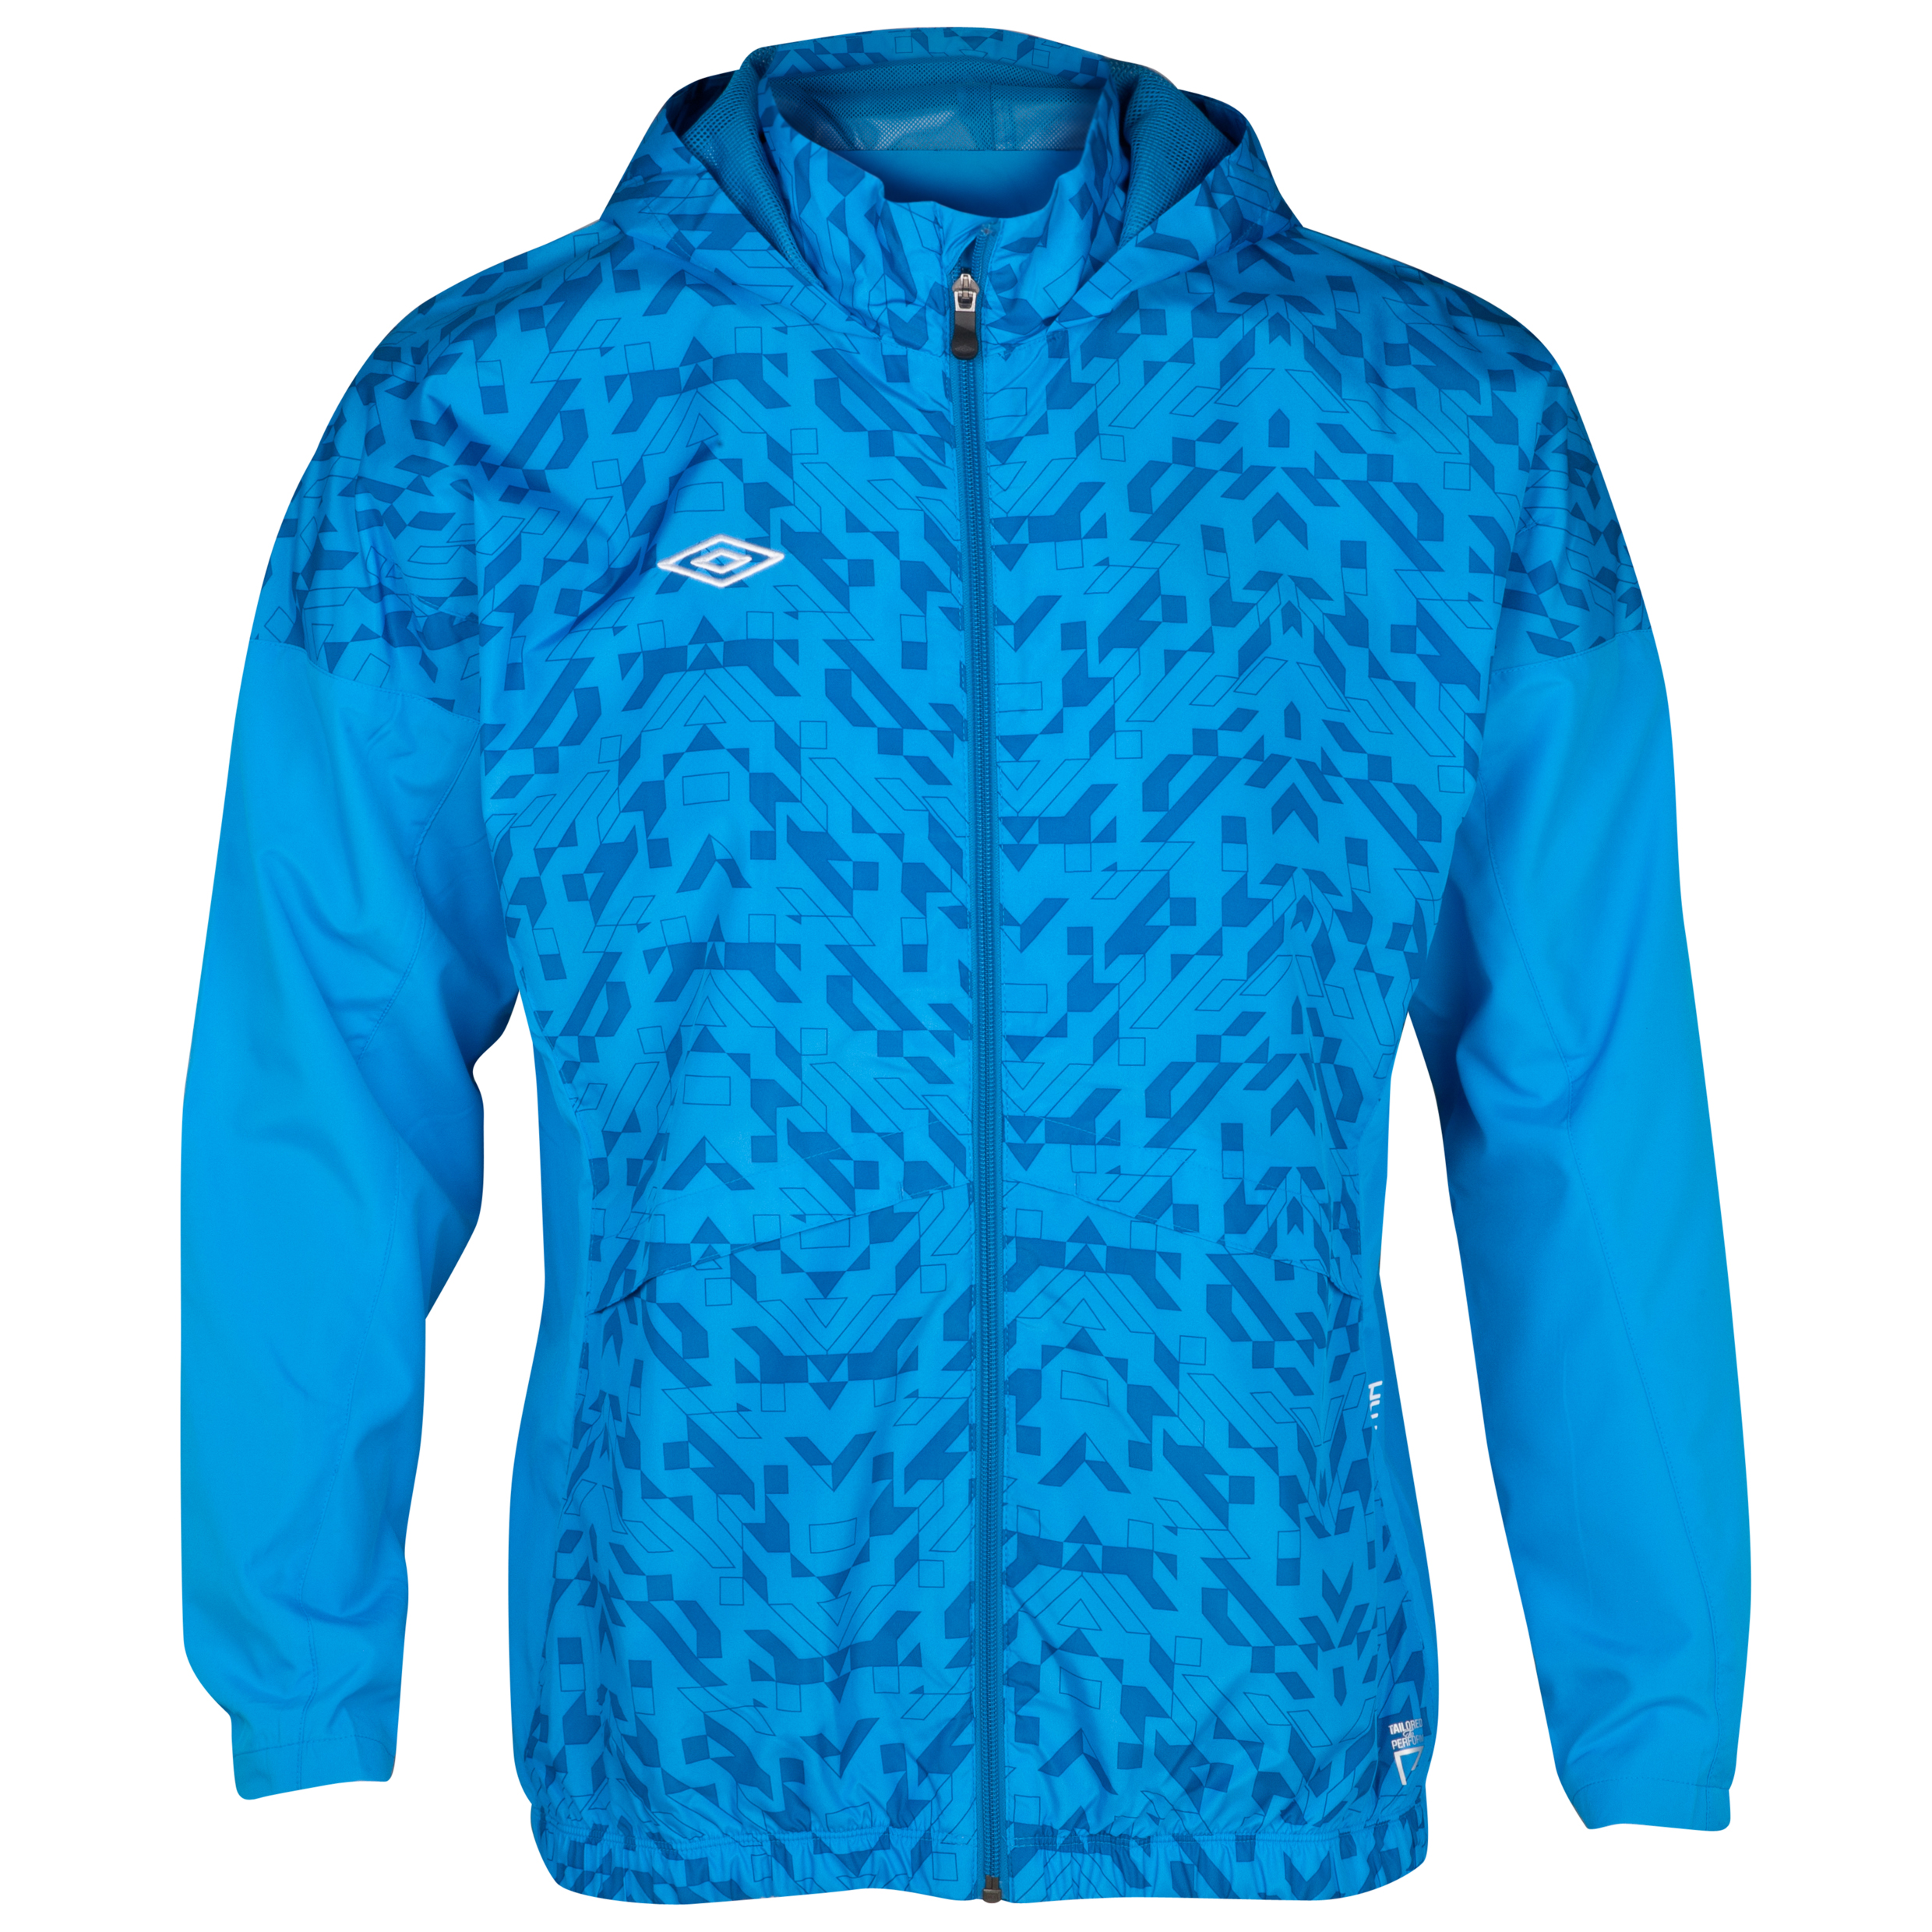 Umbro Geometra Shower Woven Jacket - Brilliant Blue